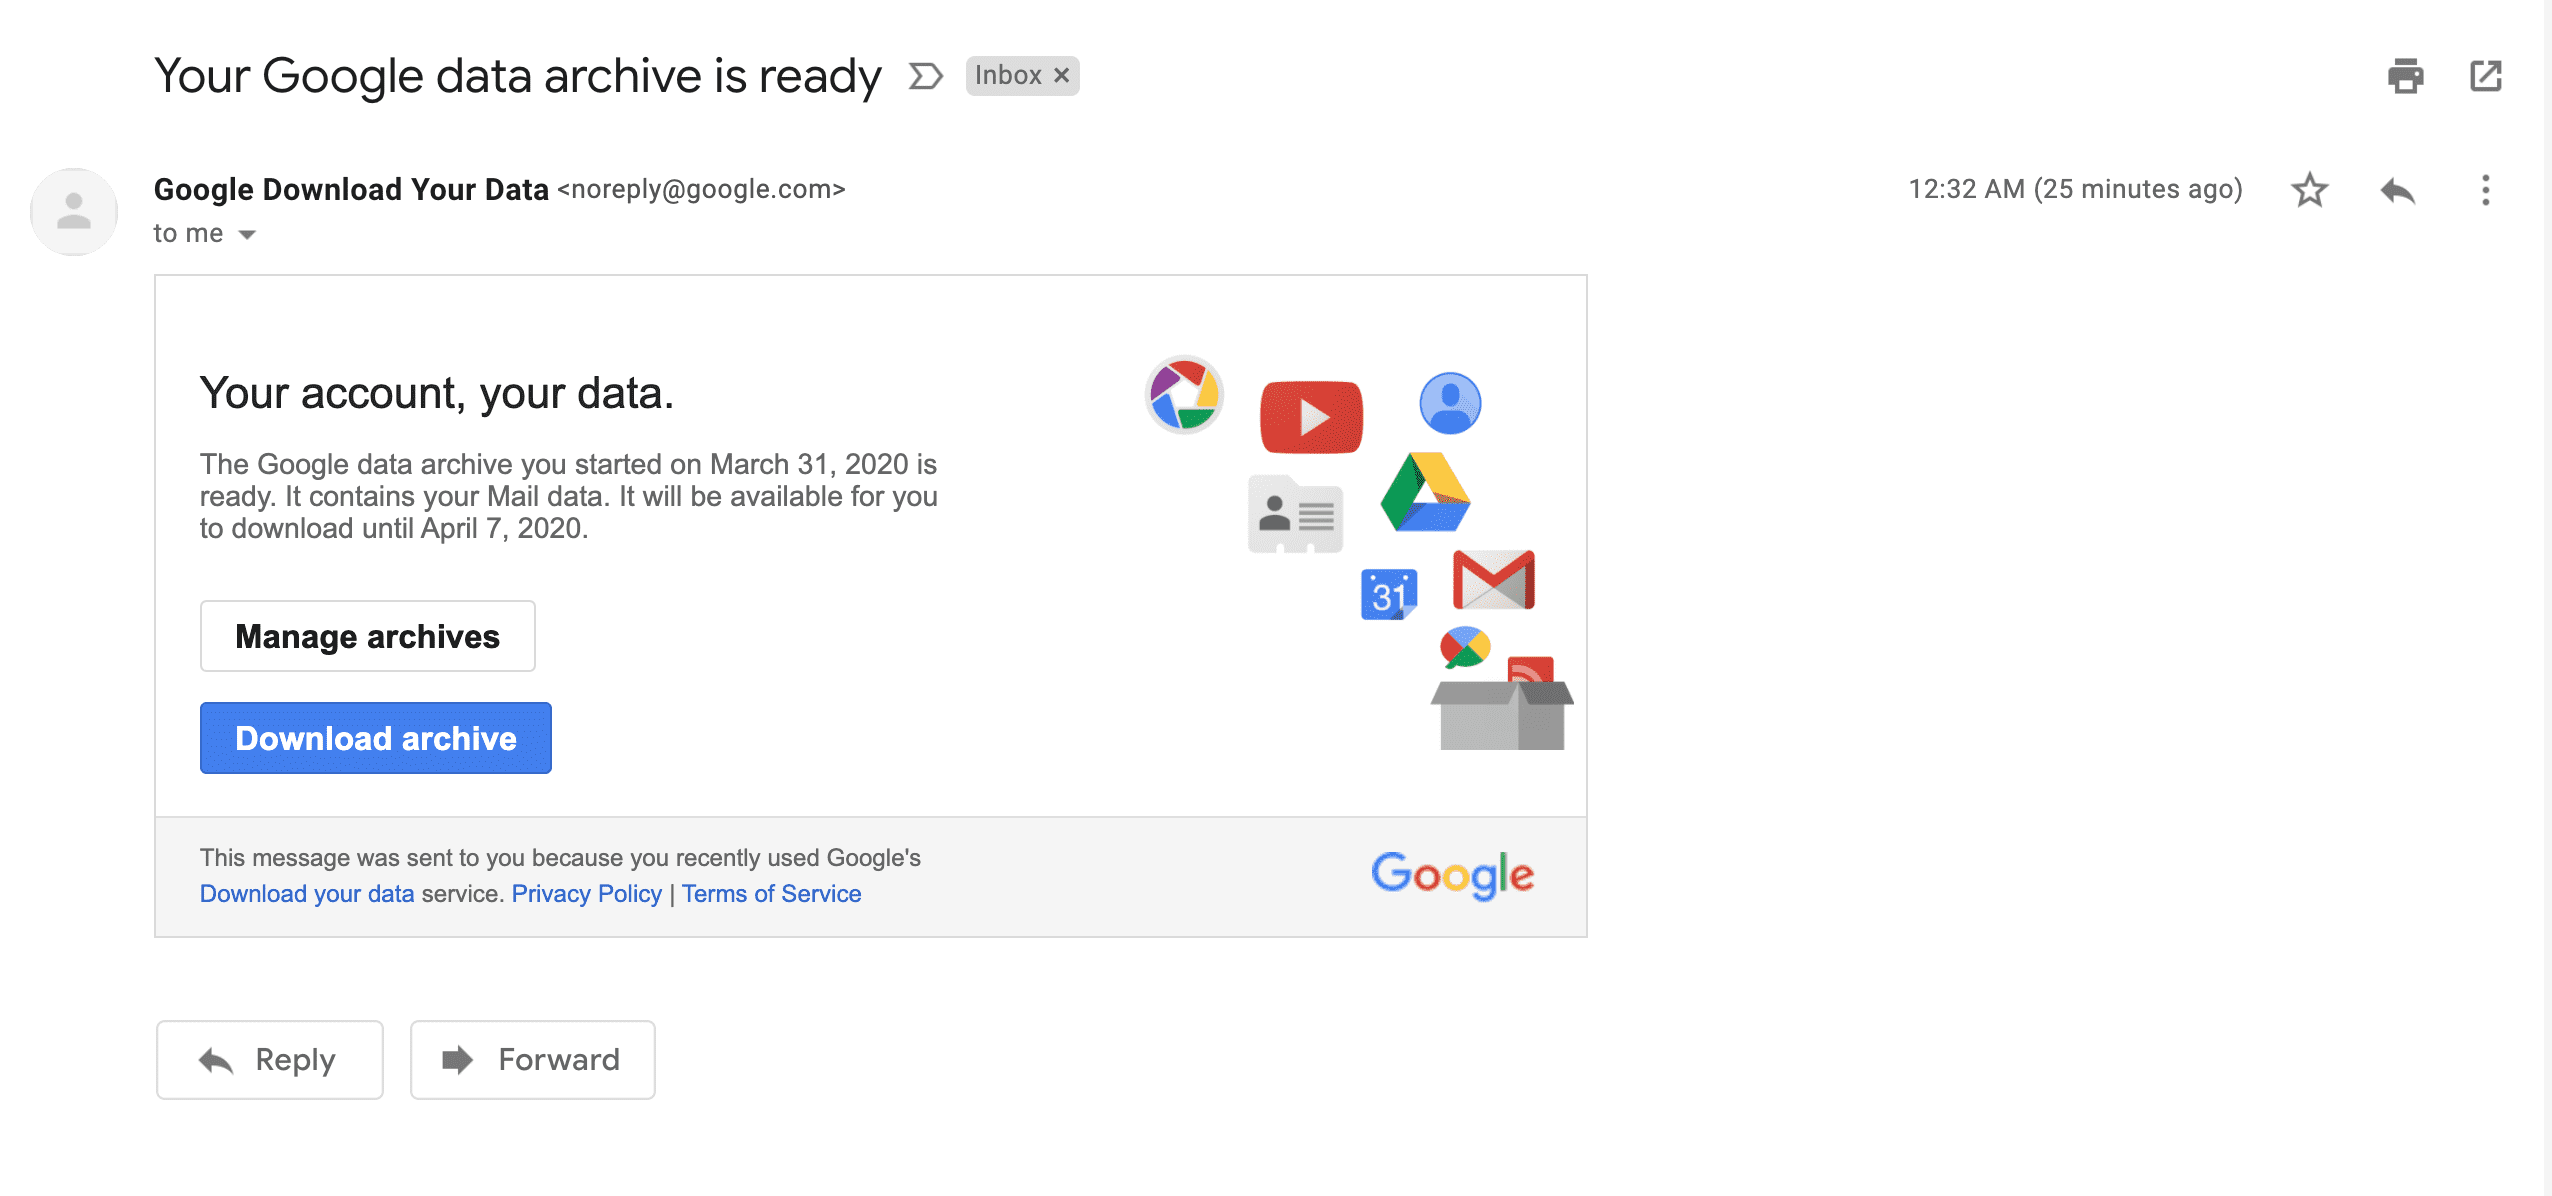 google-takeout-your-archive-is-ready.png